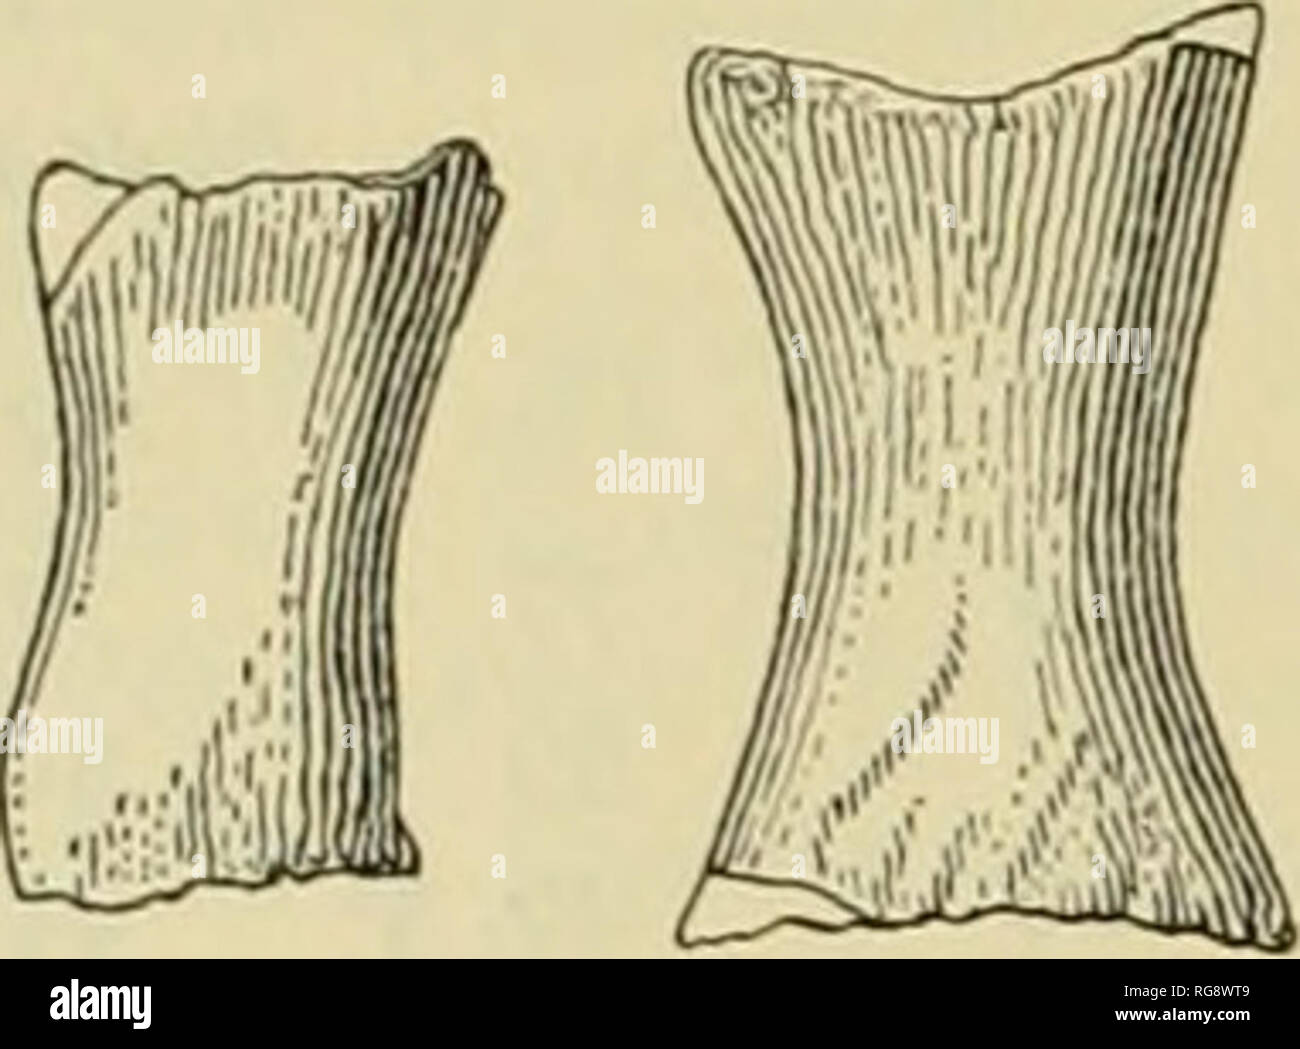 . Bulletin - United States National Museum. Science. 42 UNITED STATES NATIONAL MUSEUM BULLETIN 247. d a 0 c Figure 27.—Views of phalanges, USNM 11976, of Pelocetus cahertensis: a and b, small phalanges; c, medium size phalange; d, large phalange. Sternum One or more of four bones (pi. 20) not otherwise identi- fied with some part of the skeleton may possibly represent the sternum. These bones do not, however, agree with the sternum of living mysticetes, which in some species consists of a broad flattened presternum extended back- ward into a ziphoid process. In these Recent whalebone whales th - Stock Image